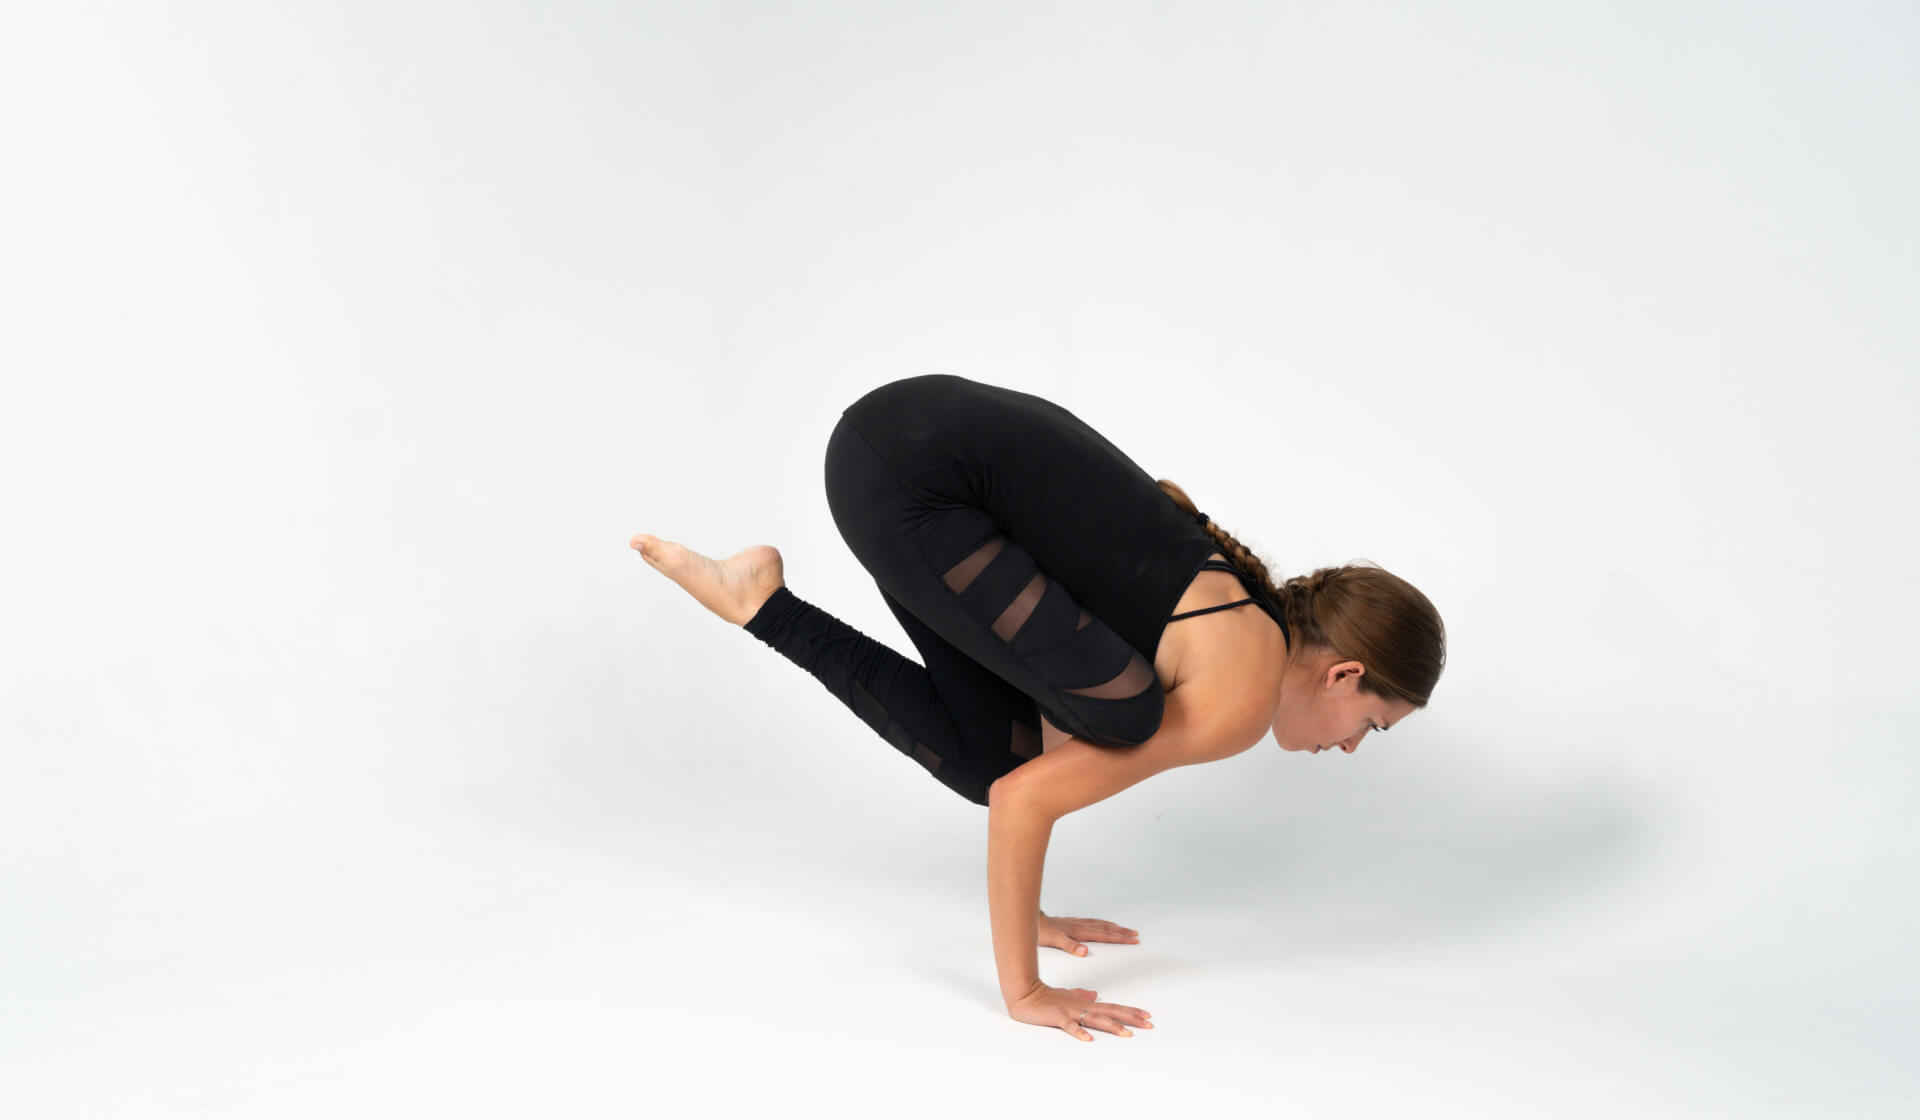 Woman yoga teacher dressed in all black preparing for a yoga pose arm balance (flying pigeon pose or eka pada galavasana) against a white backdrop